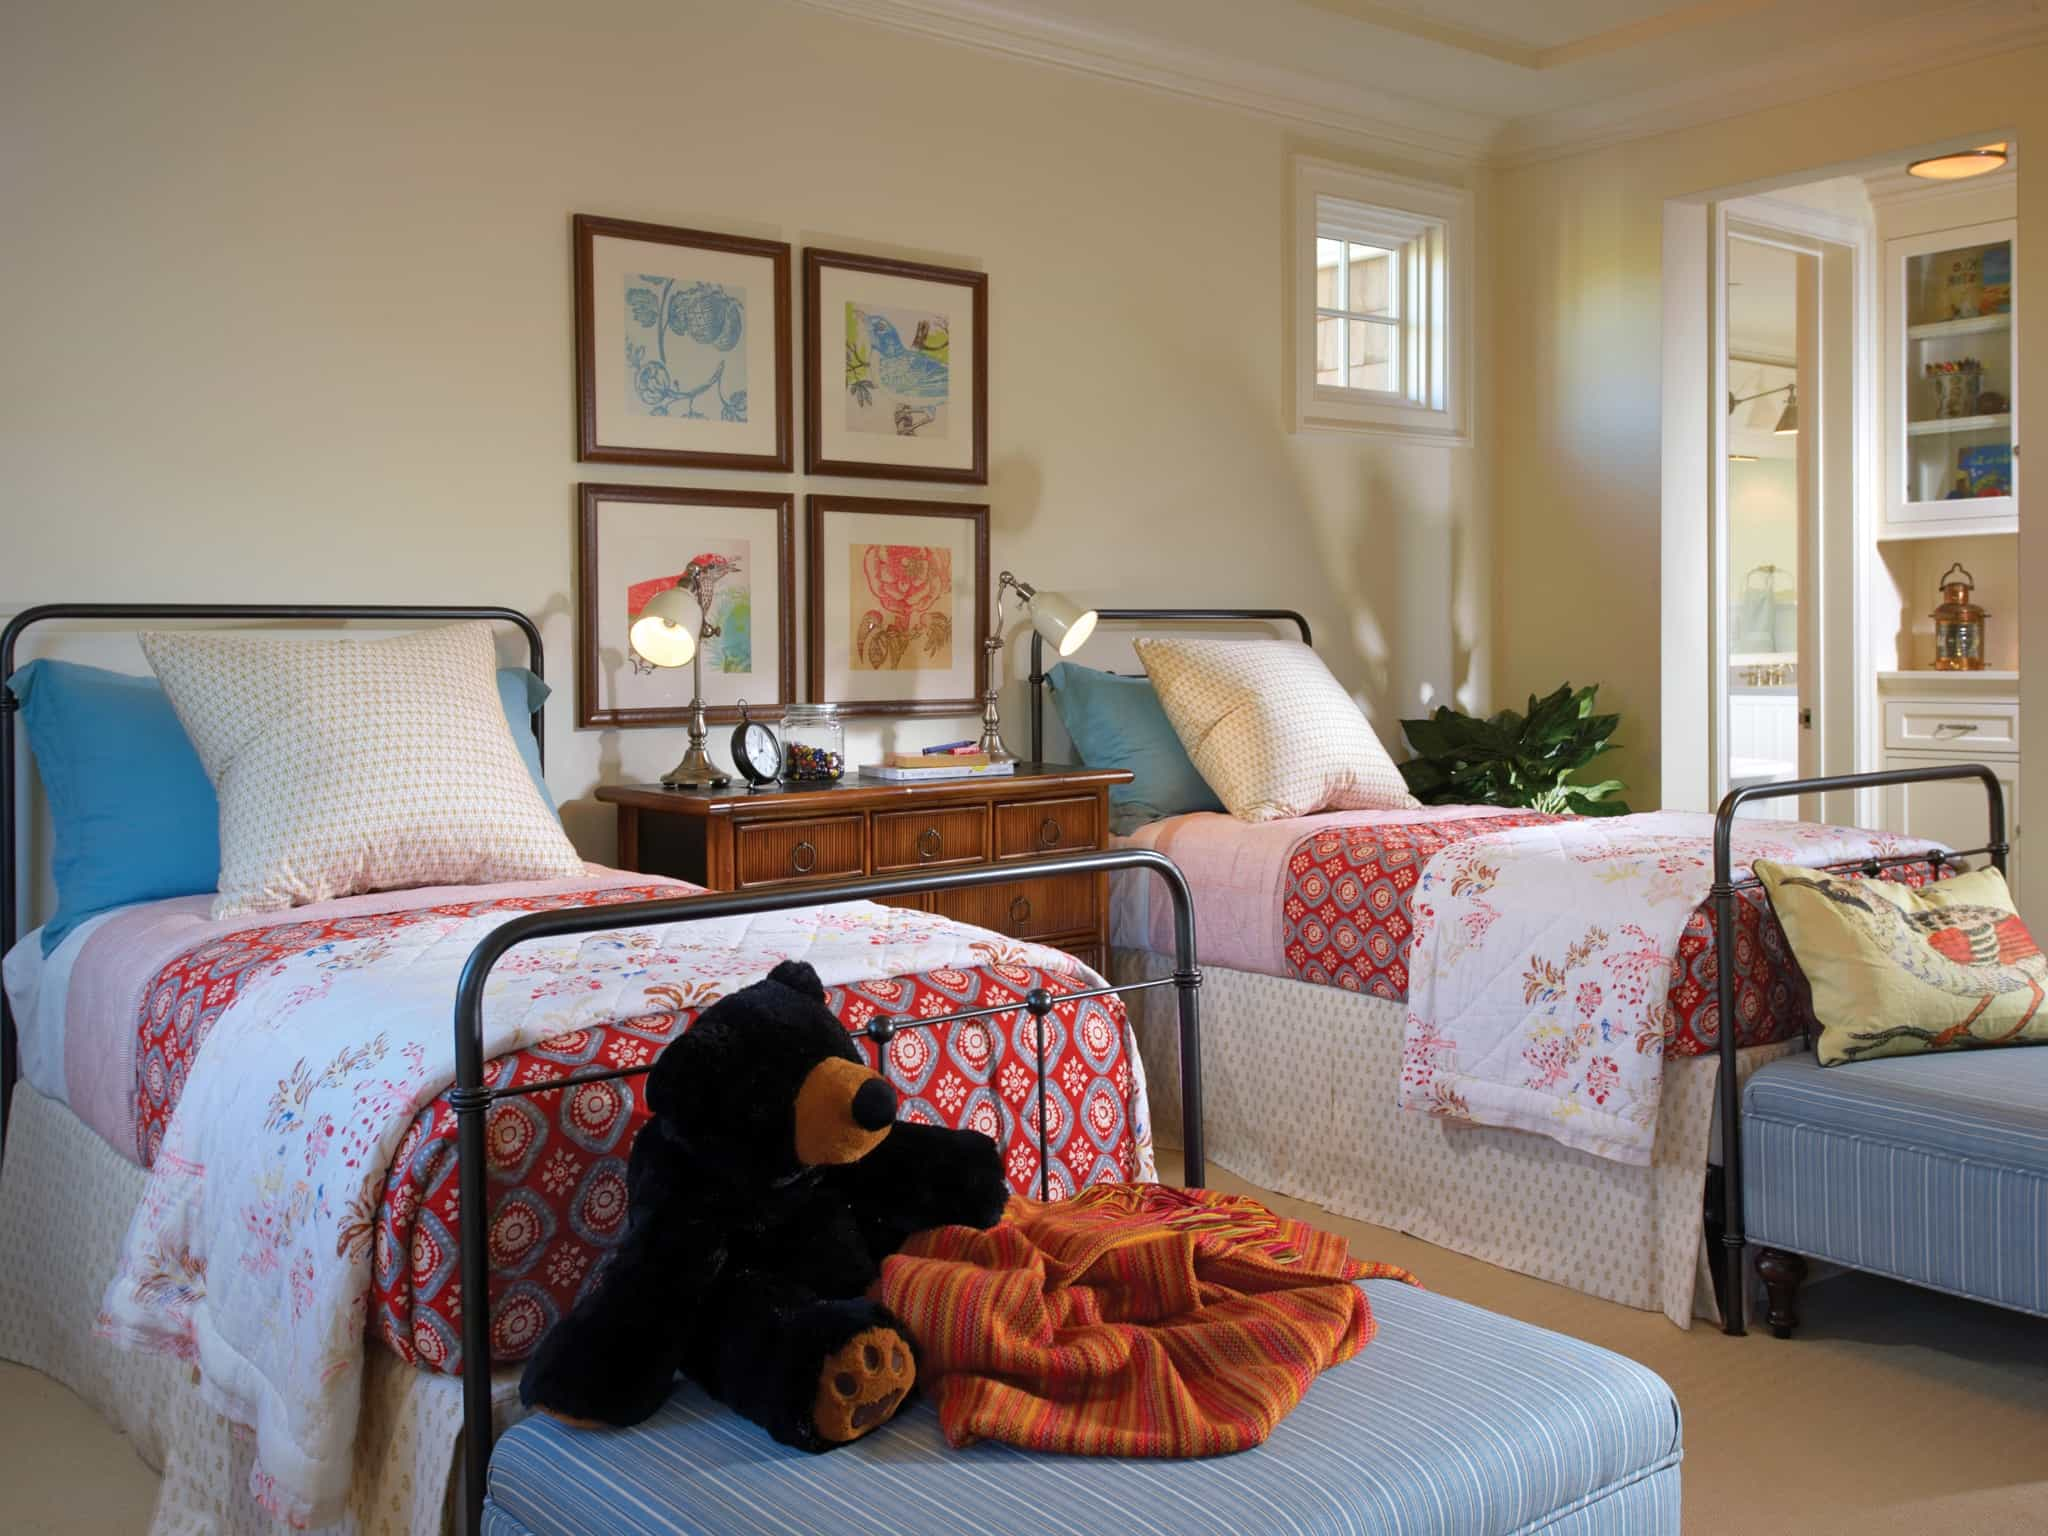 Featured Image of Cape Cod Style Bedroom With Twin Beds